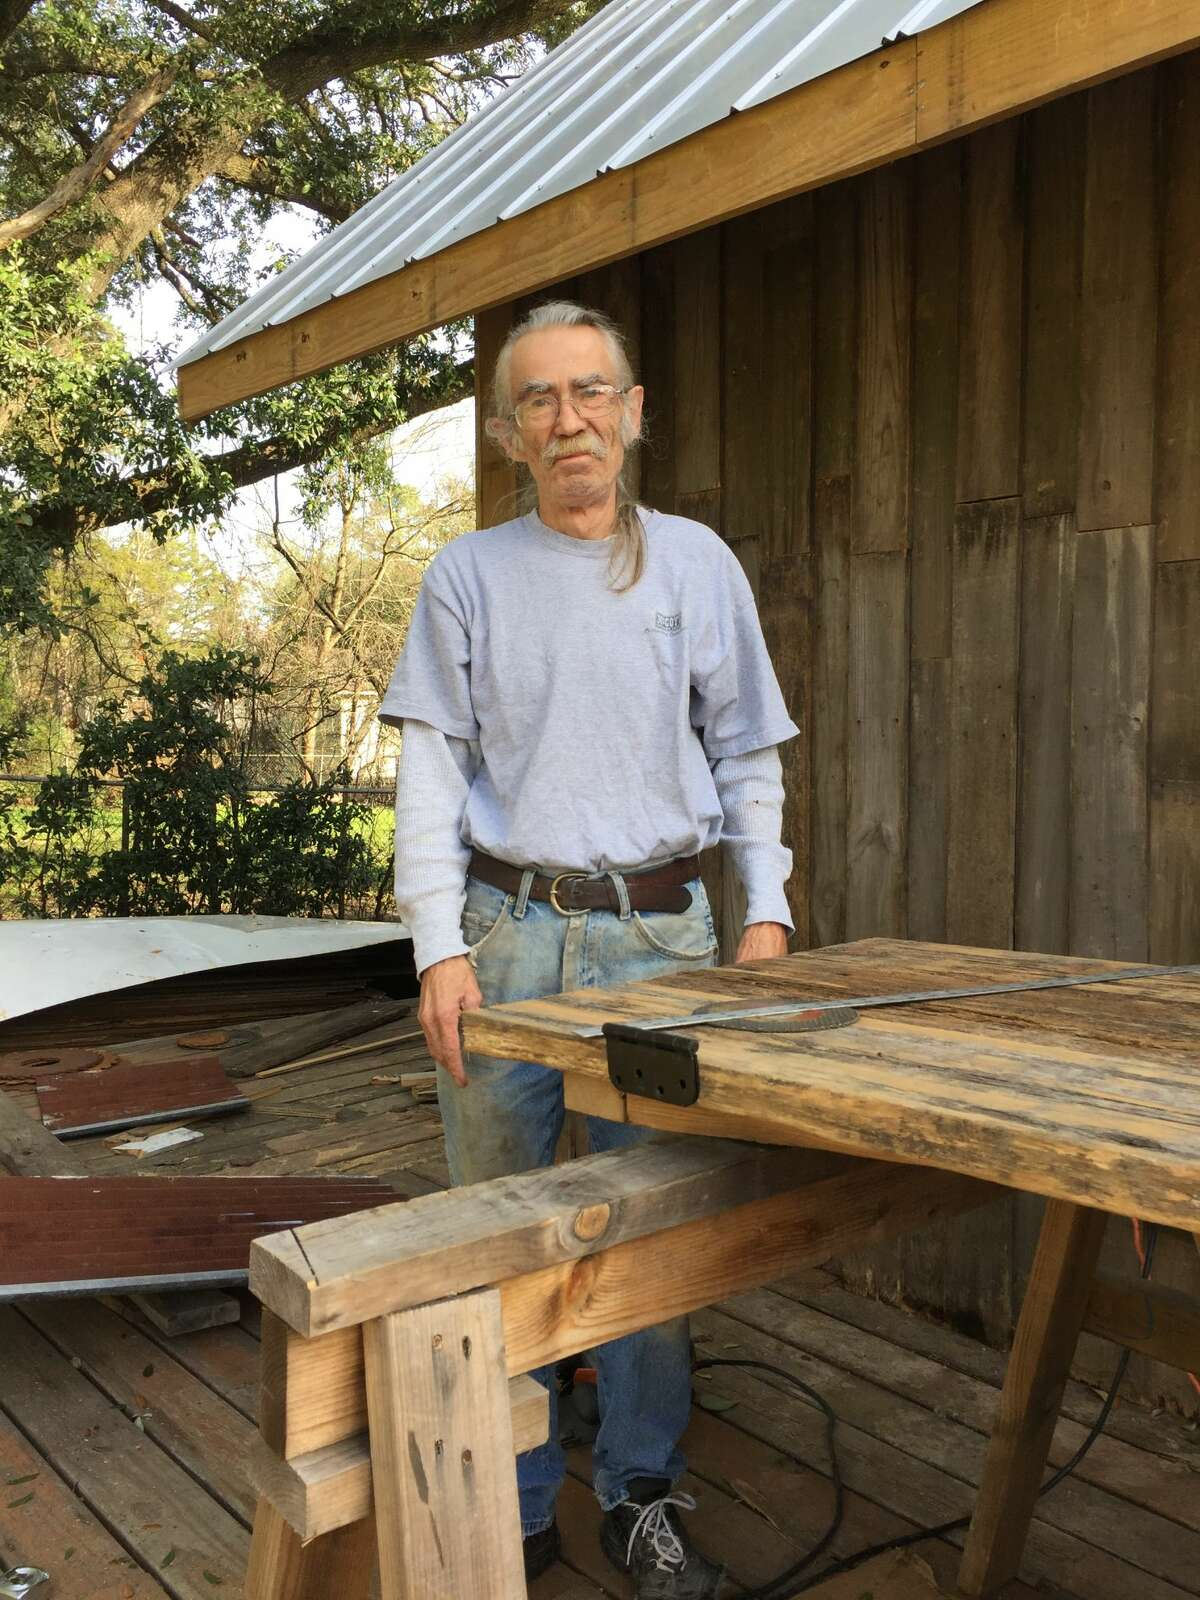 Dan Phillips with the Phoenix Commotion is working on a cowboy boot home in the college town, which will be available for rent in just a few months.